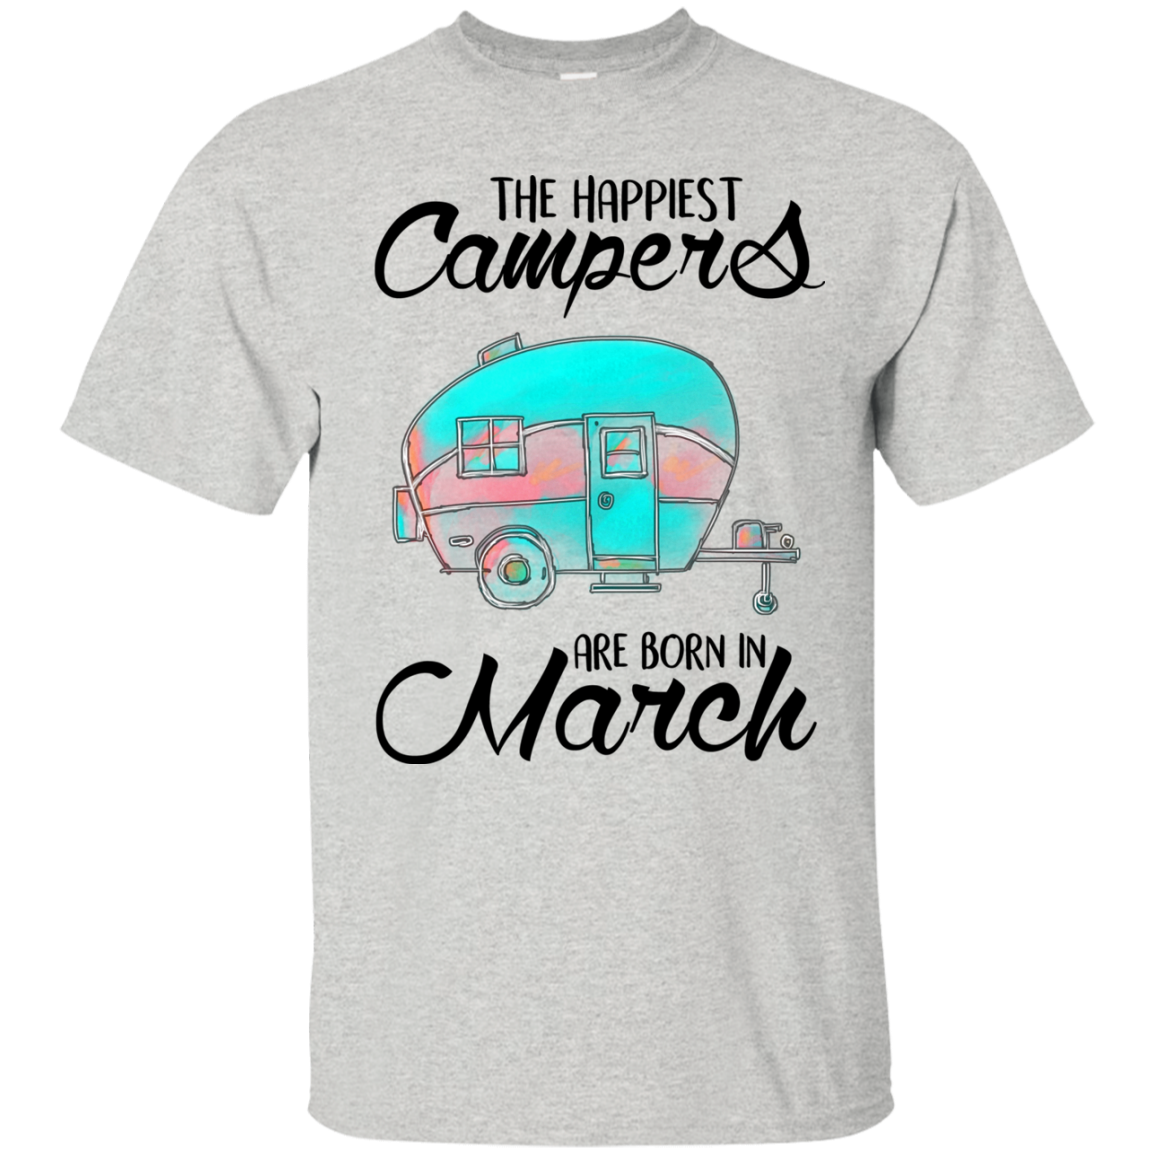 The Happiest Campers Are Born In March T Shirt